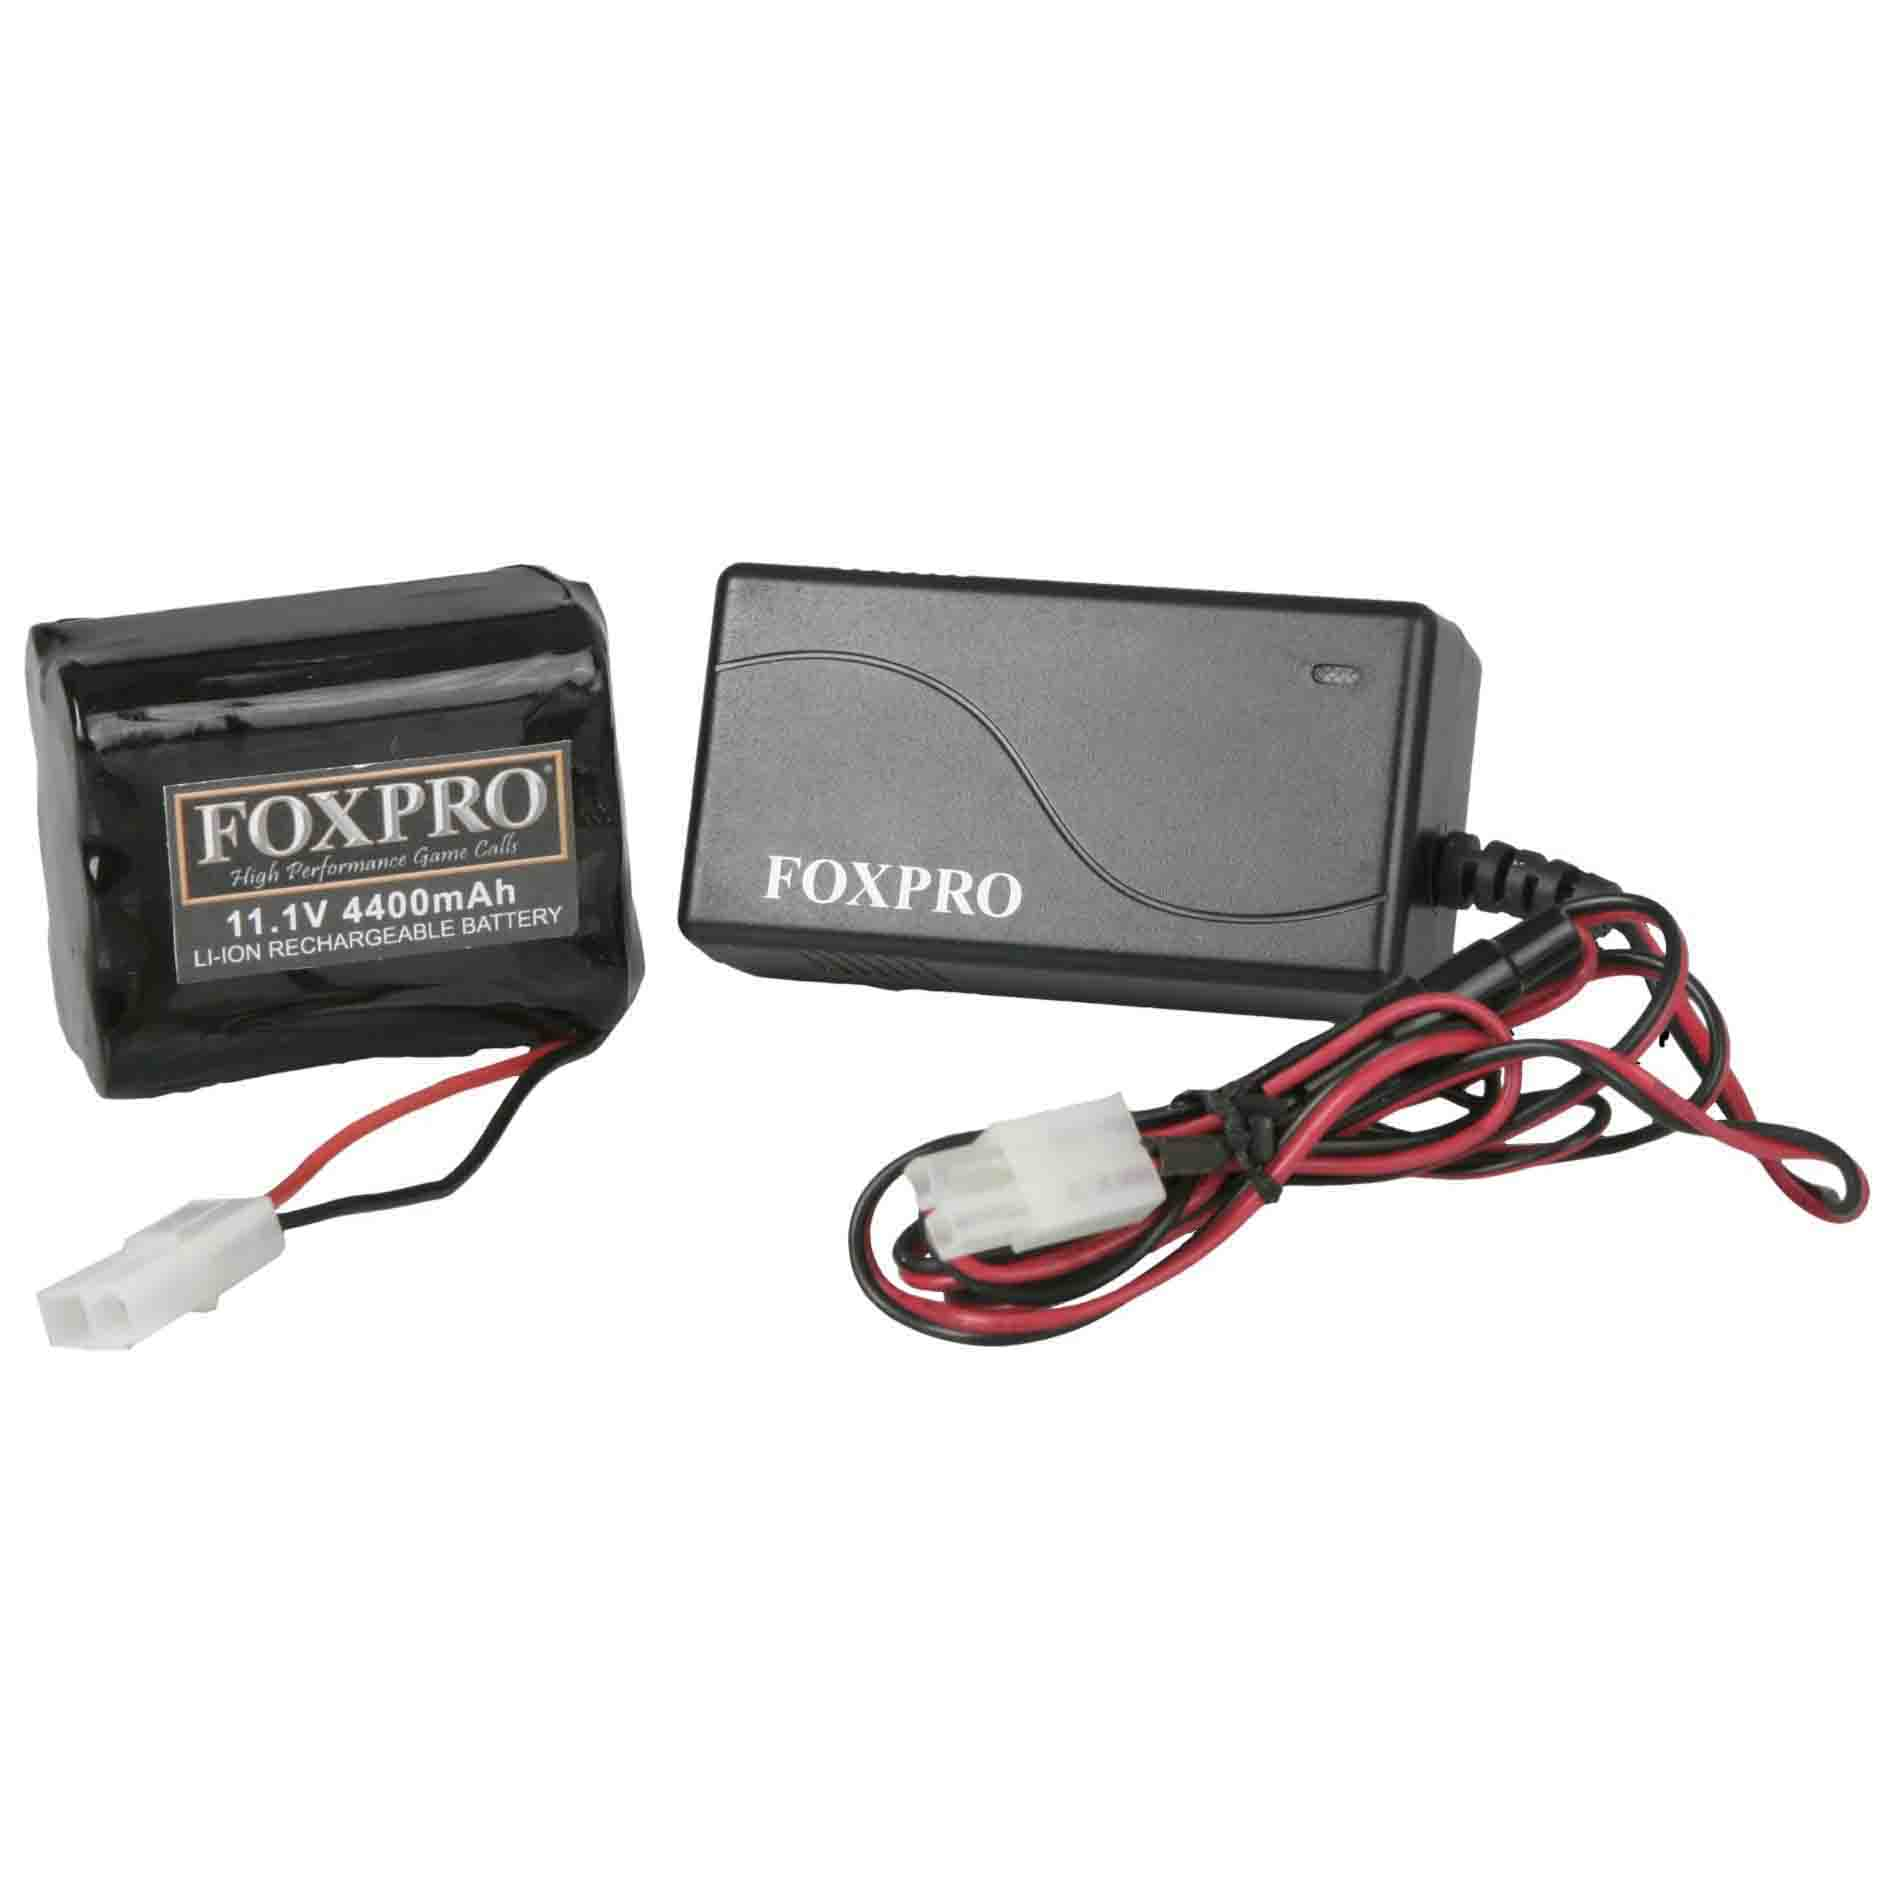 FoxPro Lithium Battery Pack & Charger